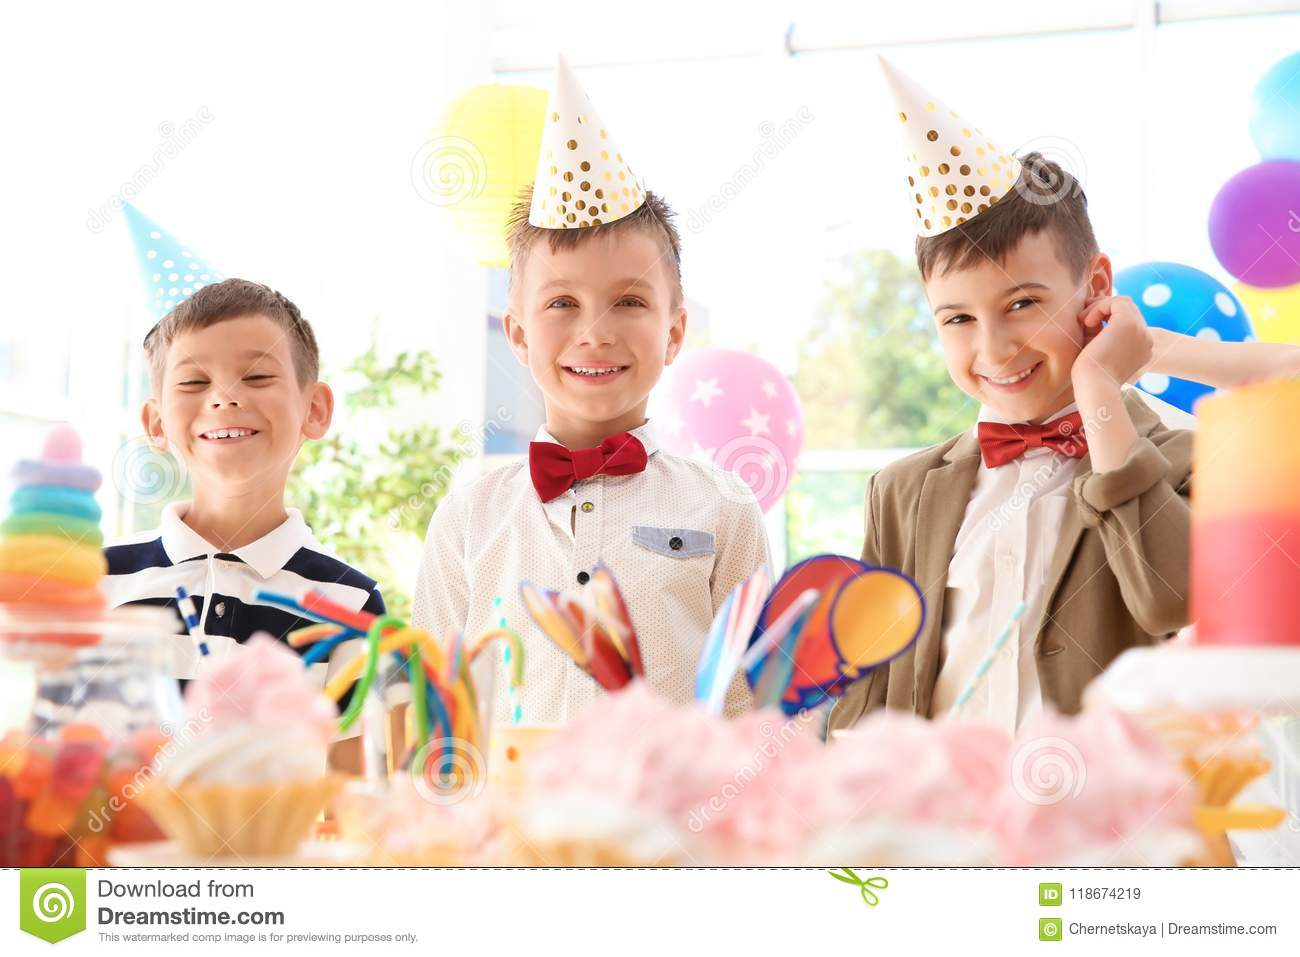 Children near table with treats at birthday party indoors